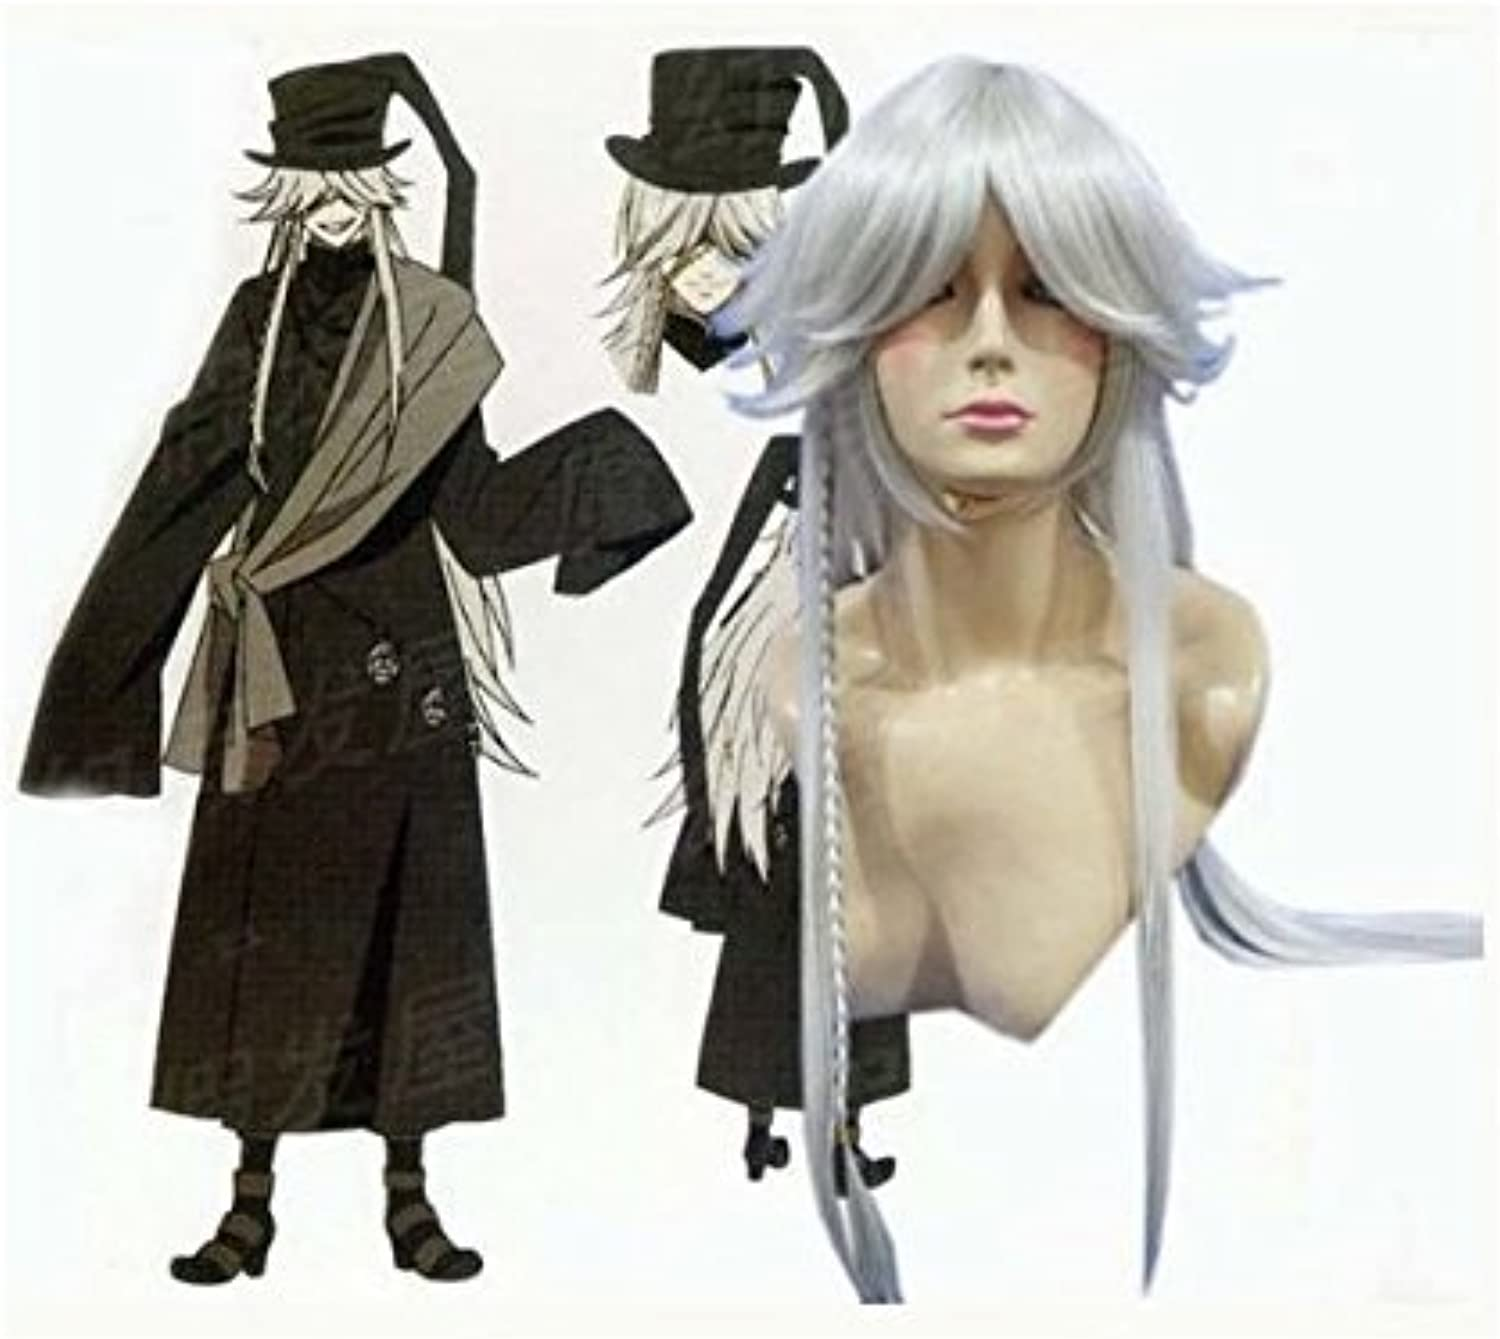 Heat-resistant high-quality wig schwarz Butler cosplay wig funeral director costume (japan import) B007R8G6EM Abgabepreis  | Deutschland Berlin